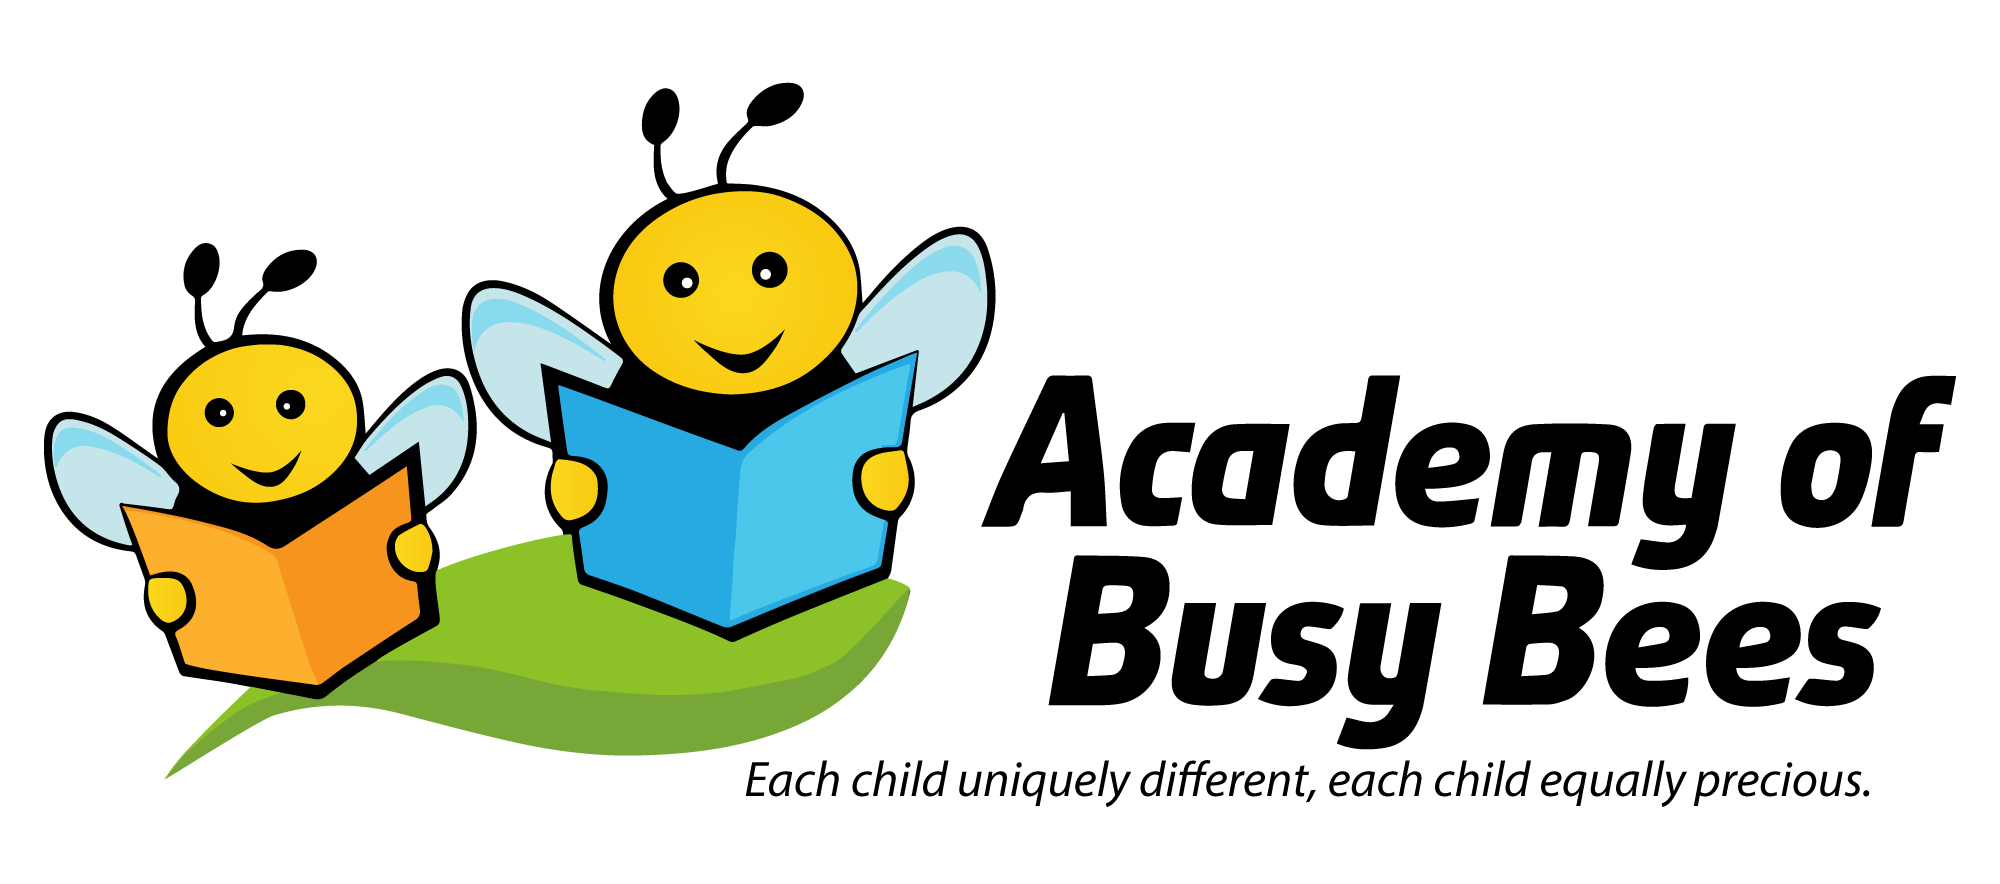 Academy of Busy Bees LLC